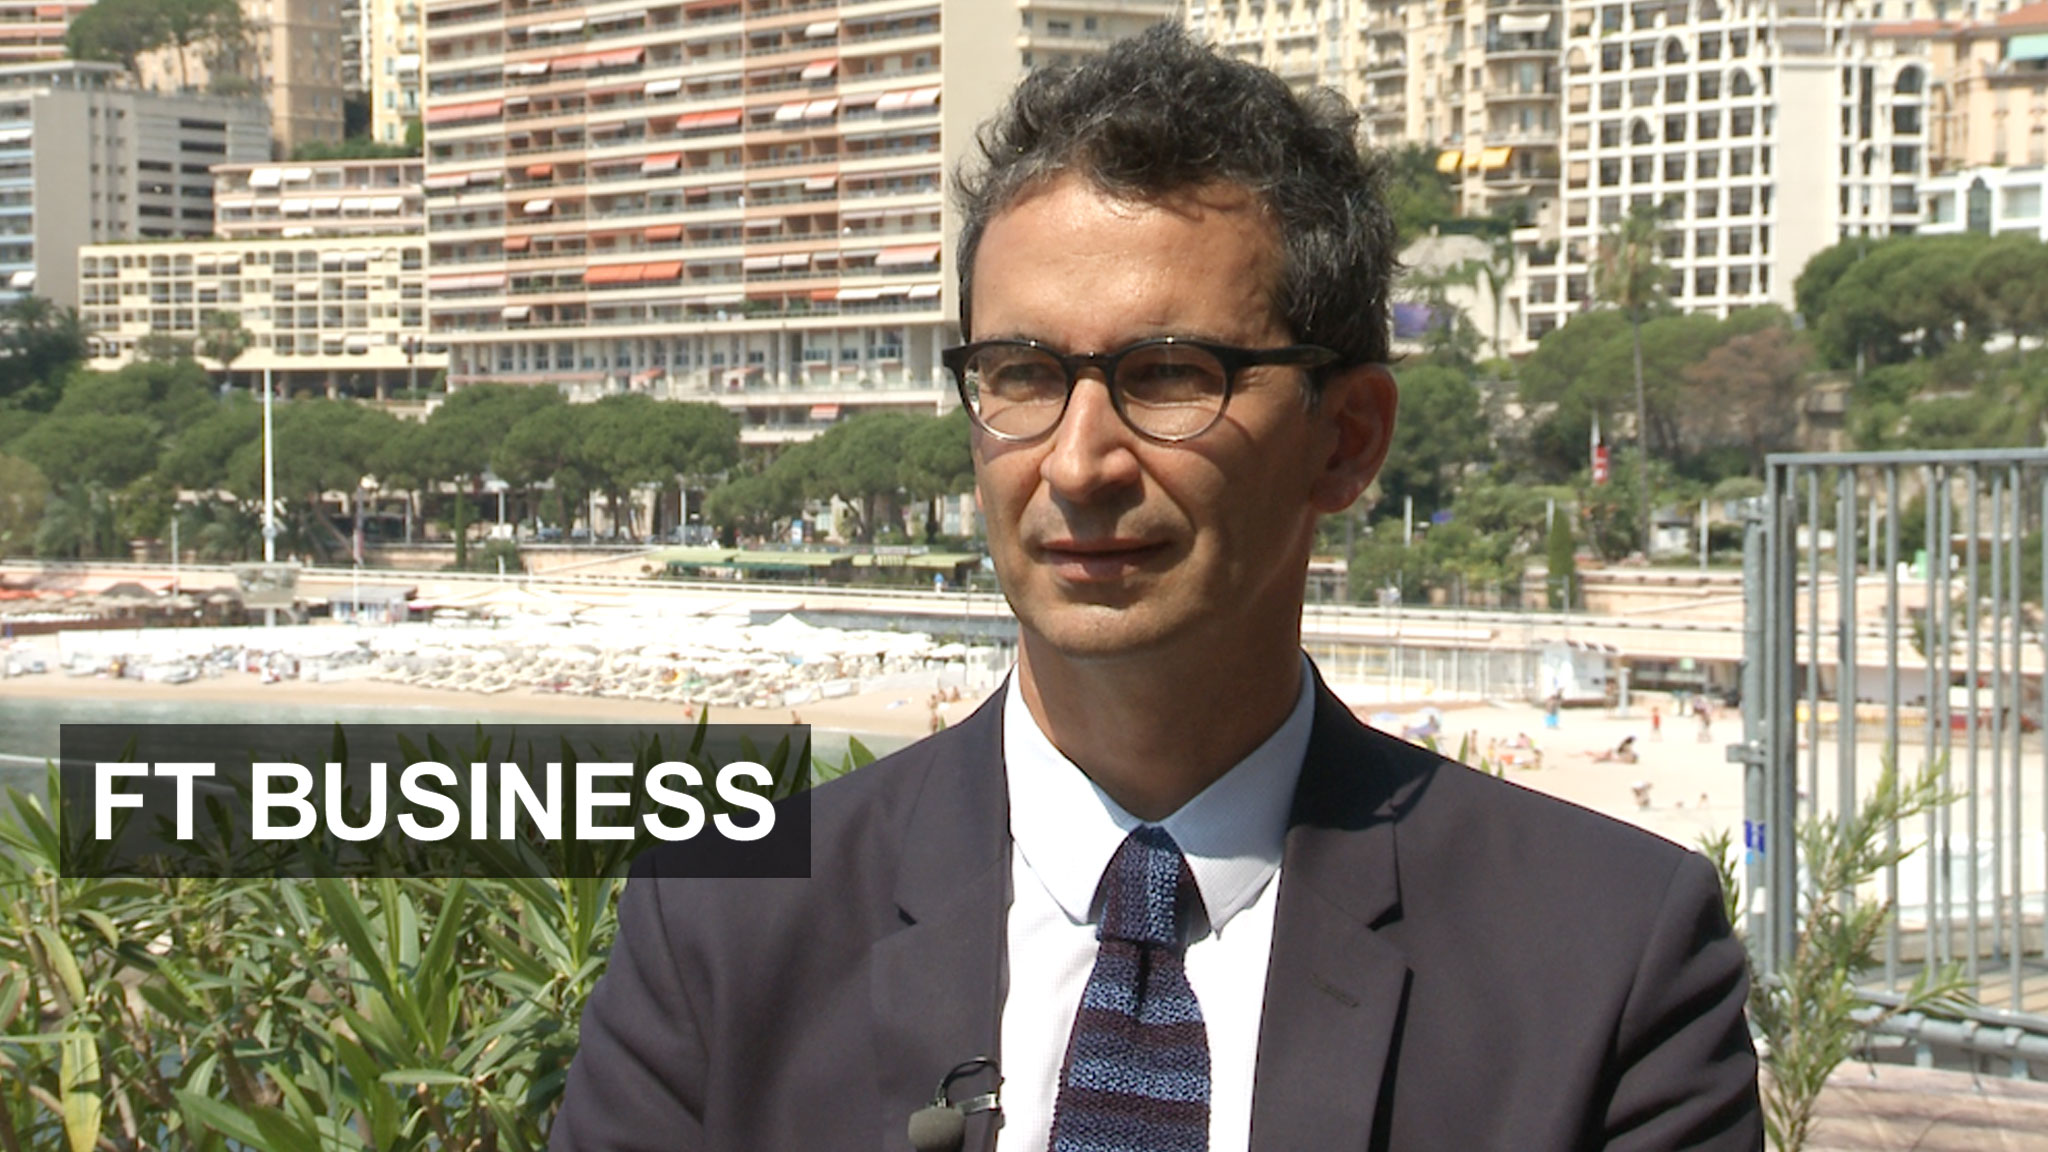 Lunch with the FT Federico Marchetti